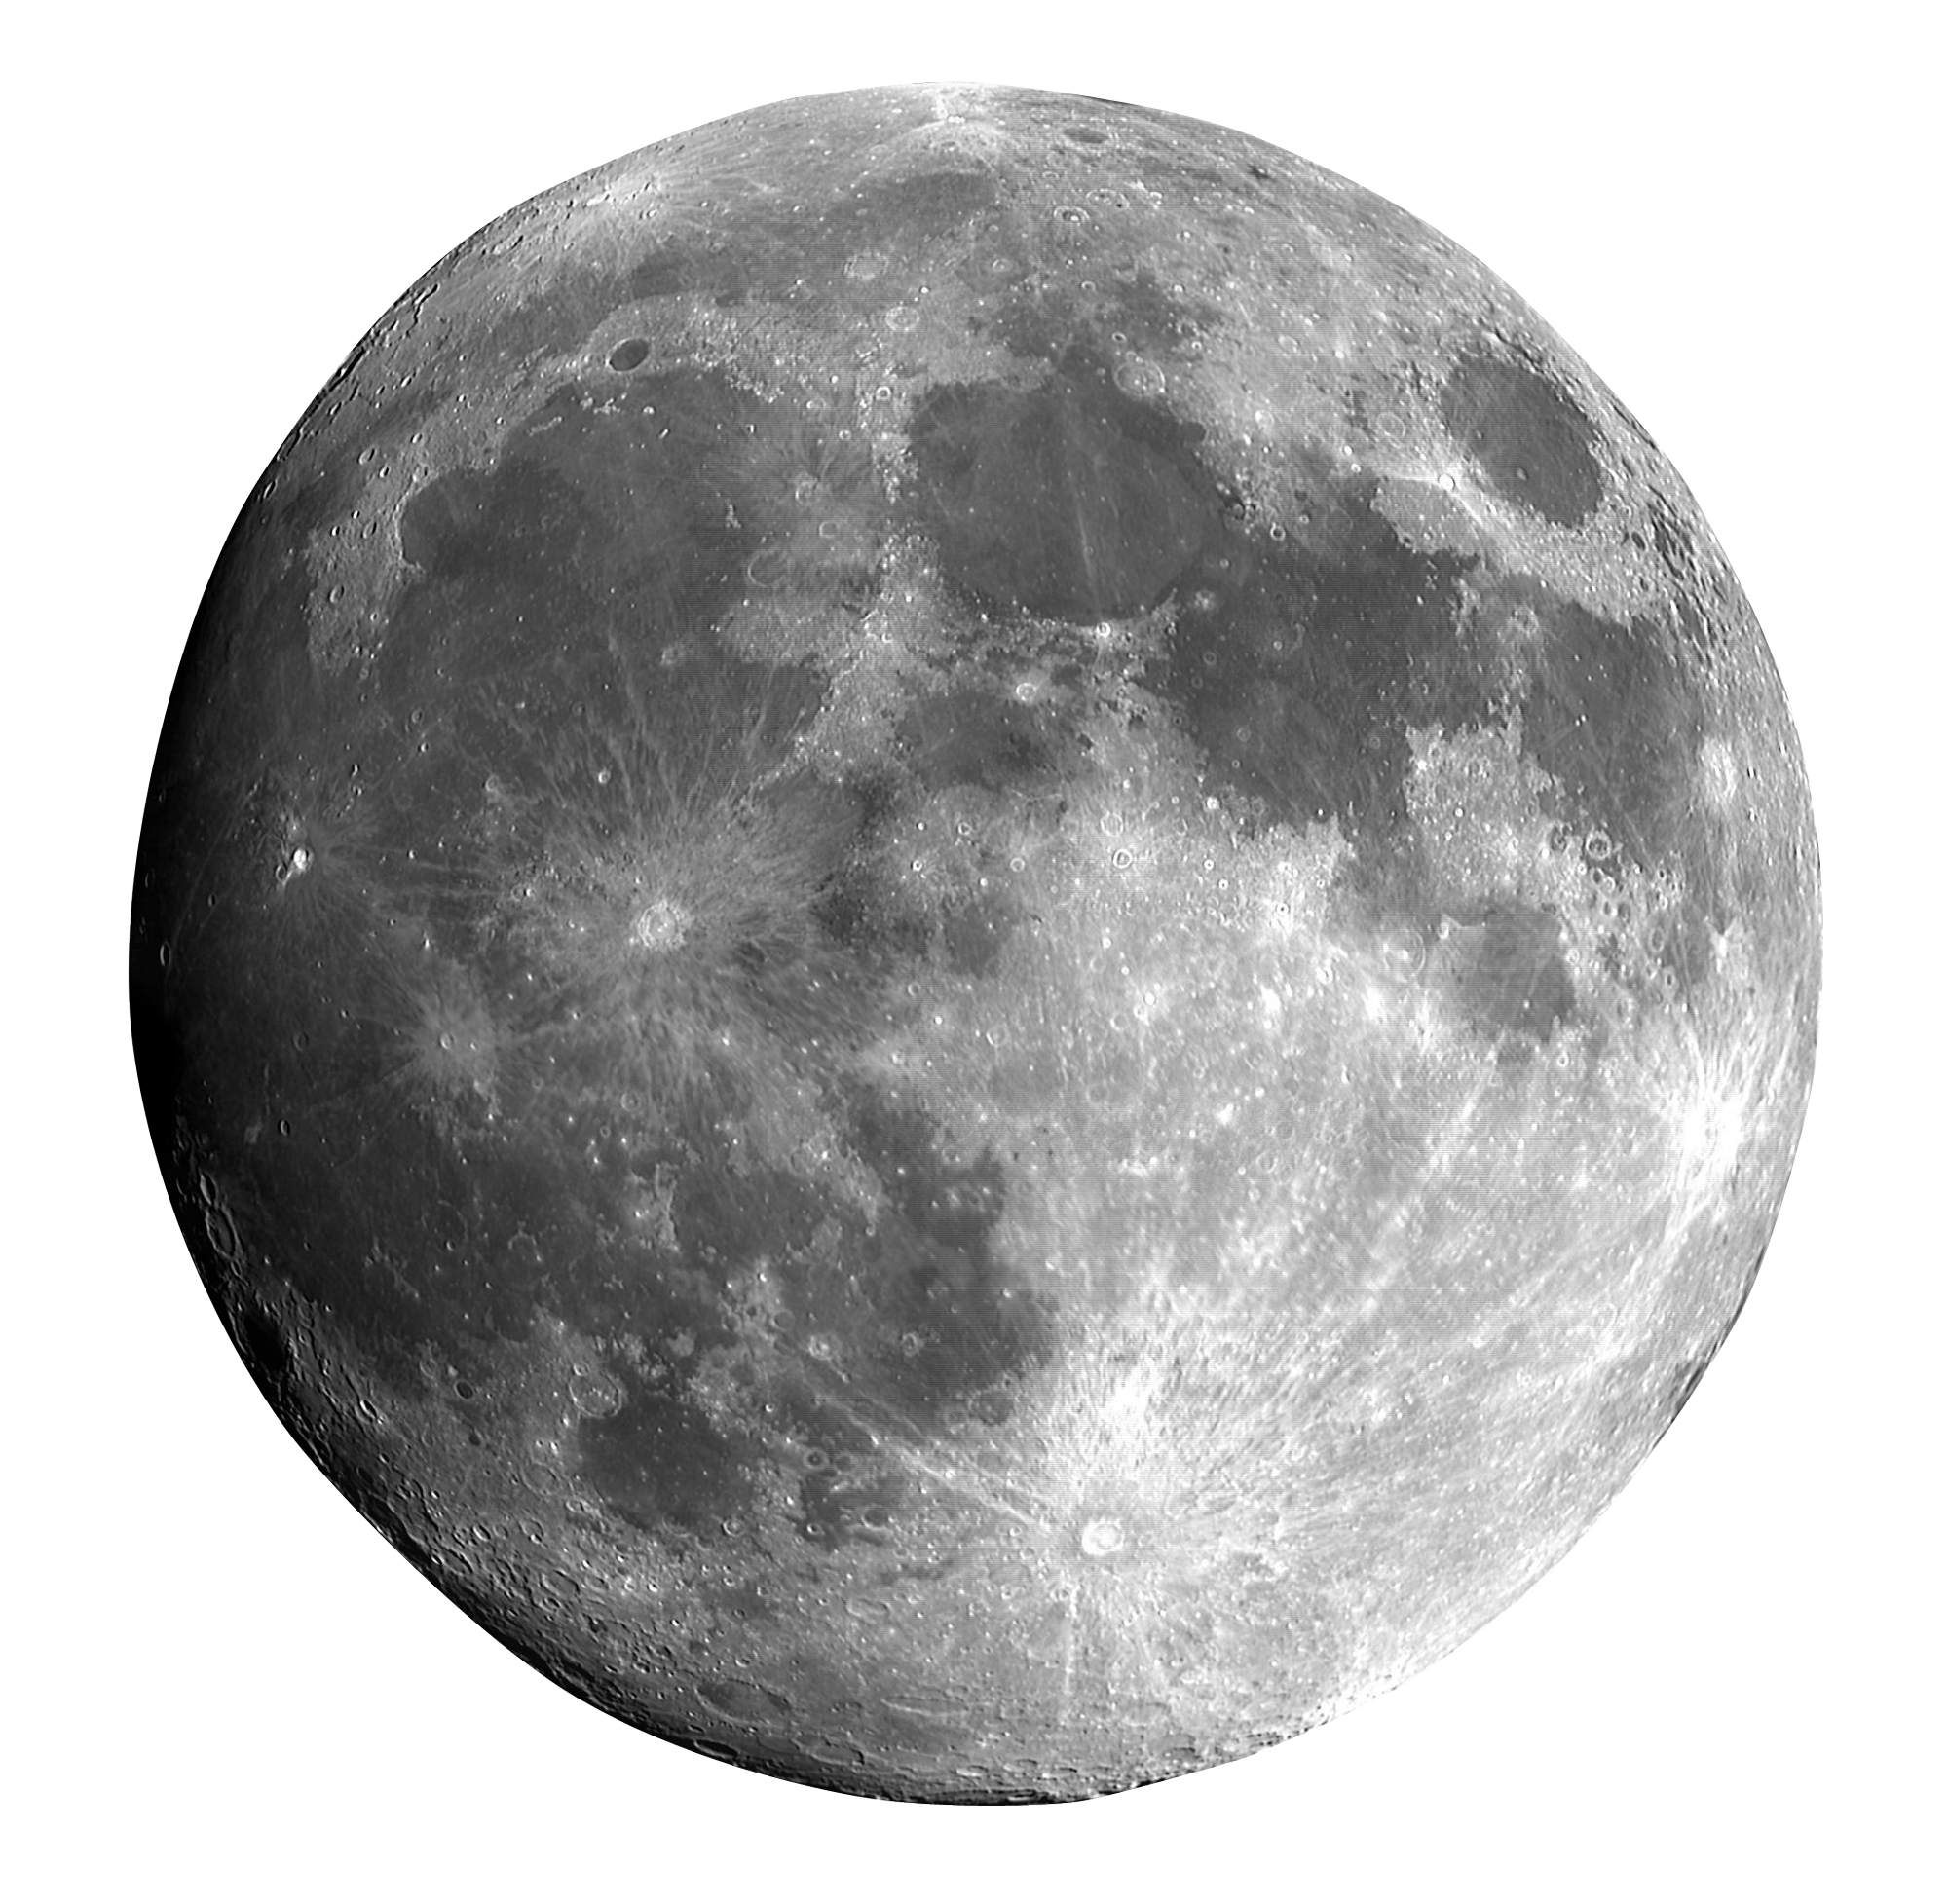 royalty free stock Clipart black and white moon. Png image purepng free